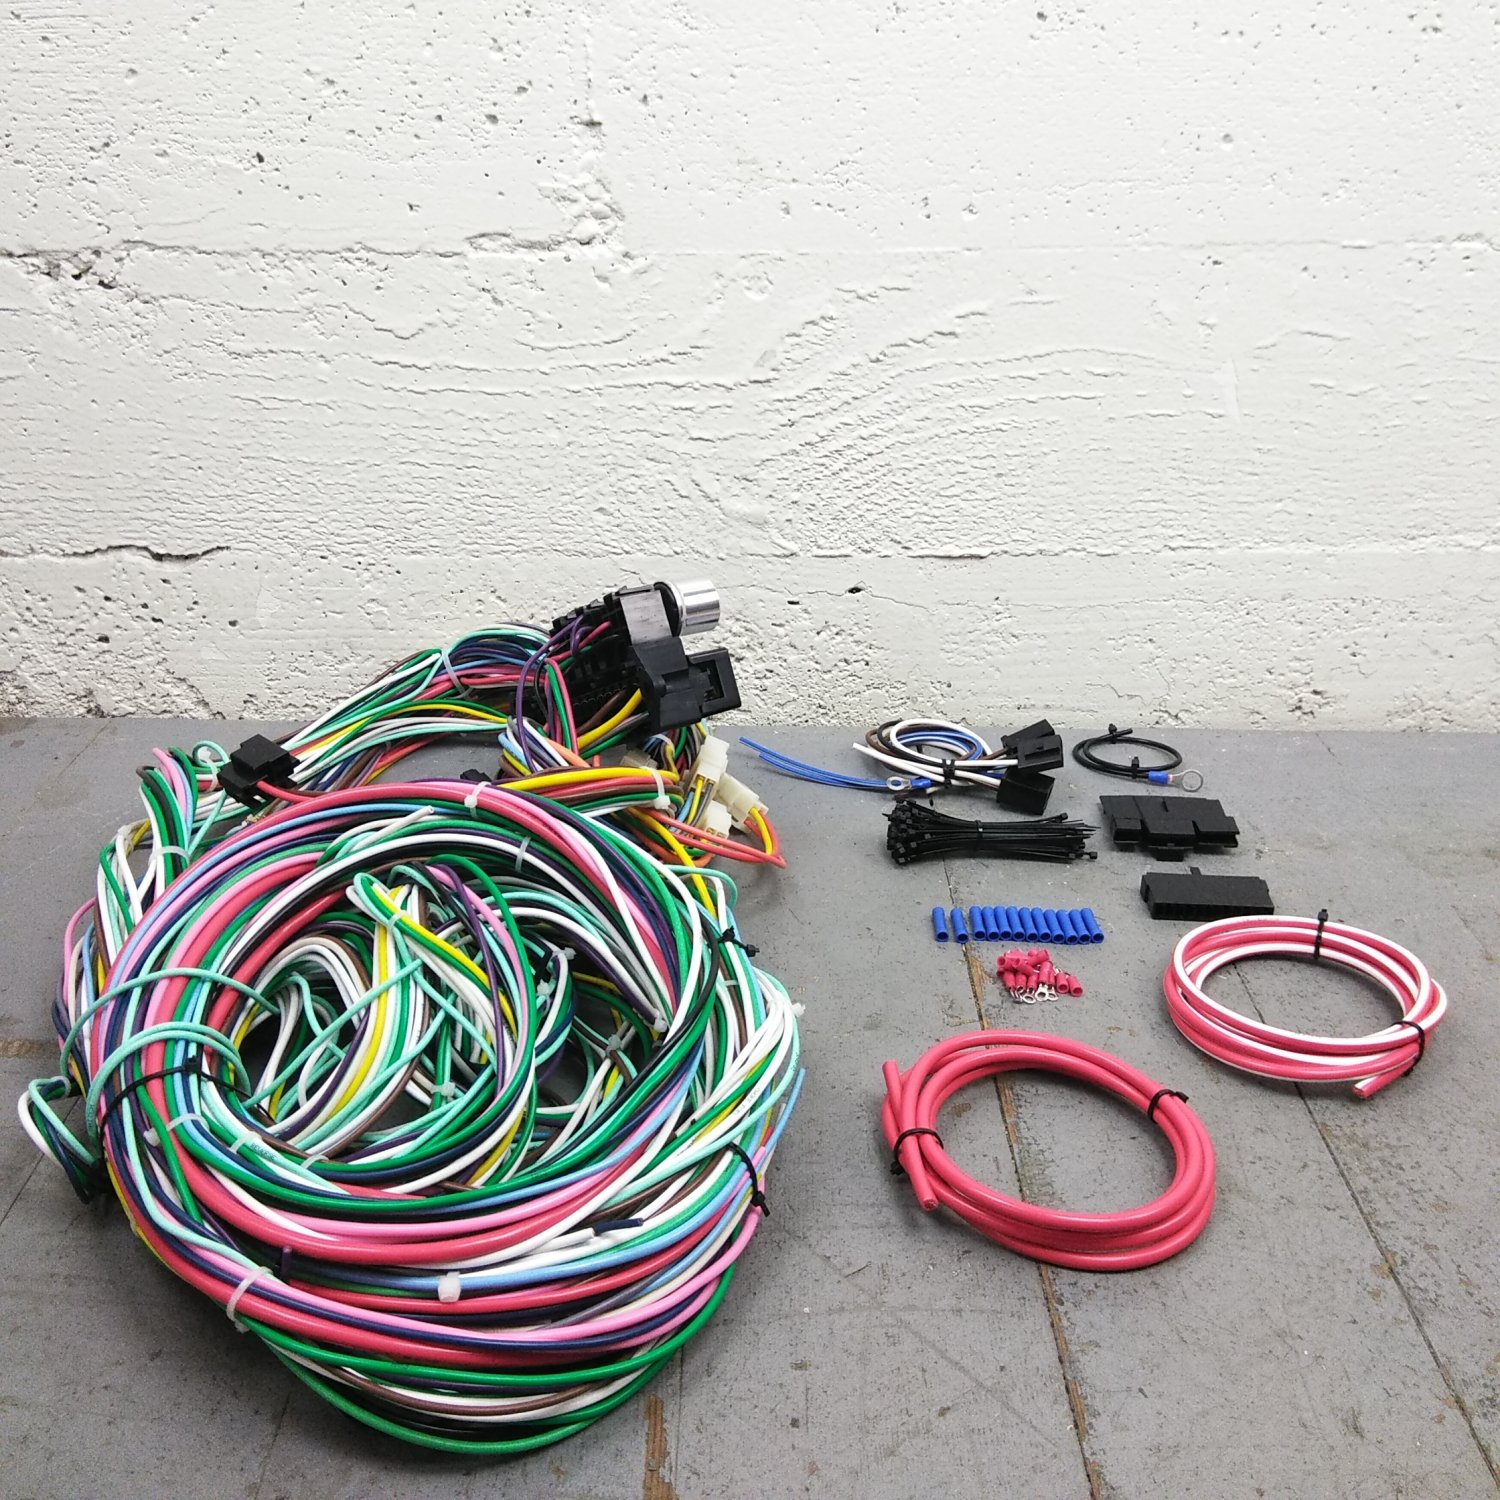 1955 - 1959 Chevrolet Pickup Truck Wire Harness Upgrade Kit fits painless  new. Bar_Product_Description_C